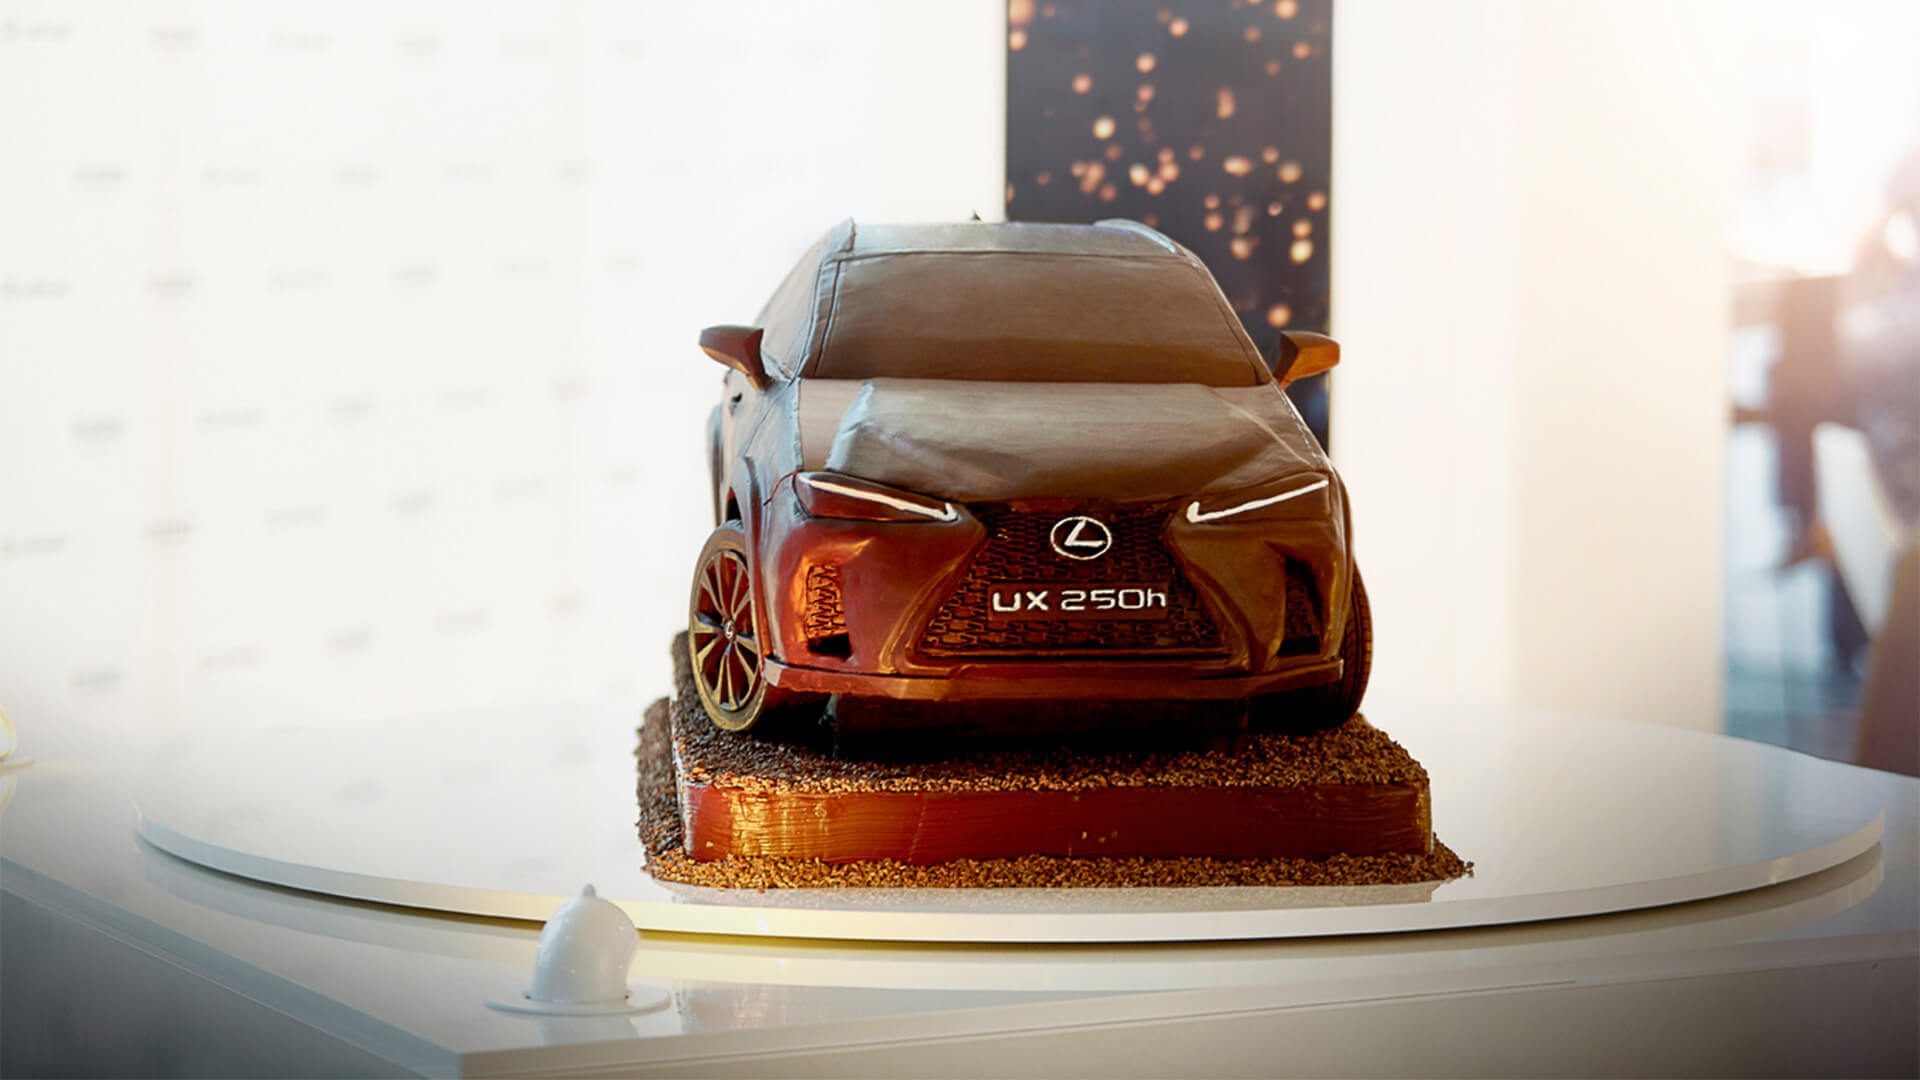 2019 lexus lounge UX Chocolate Car 1920x1080 10